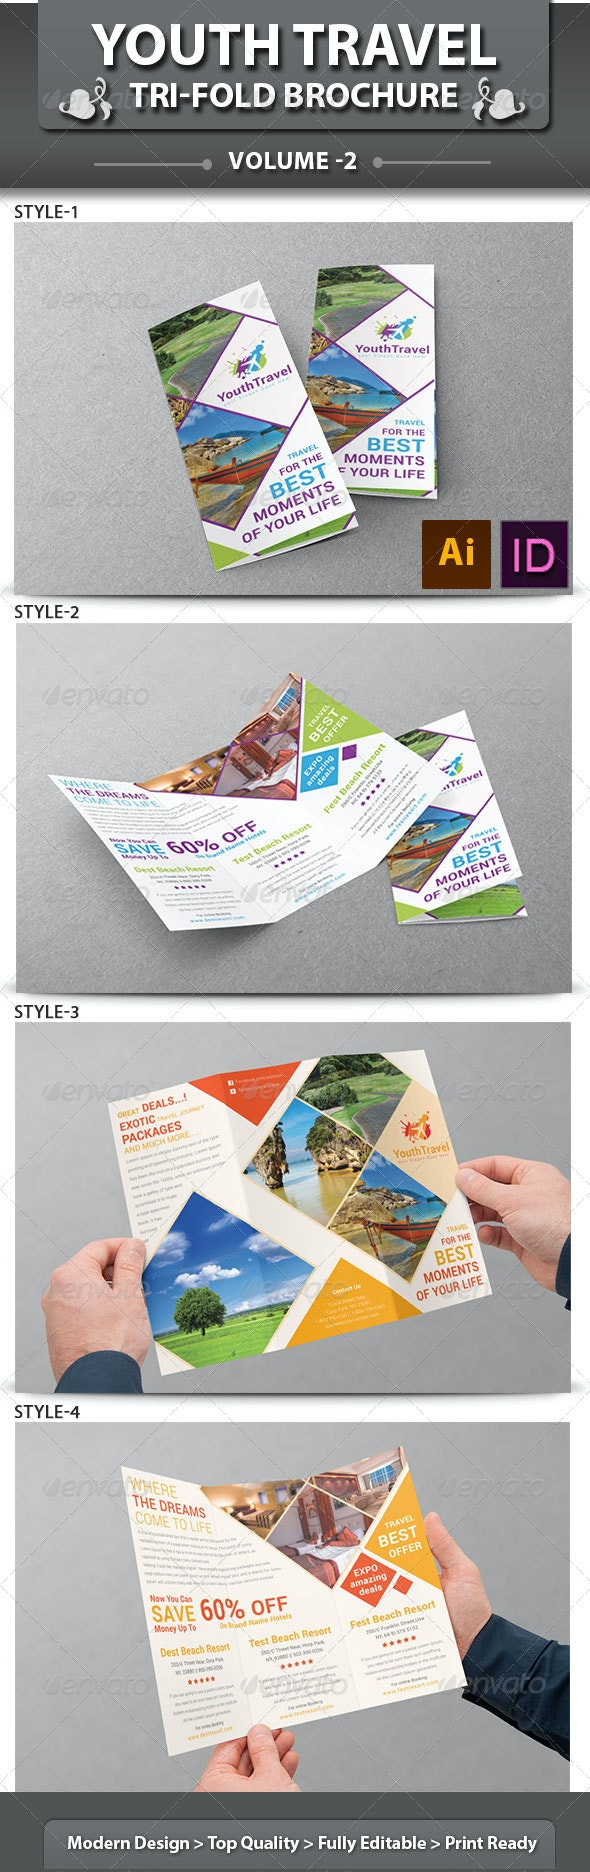 Travel Business Tri-fold Brochure | Volume 3 - Corporate Brochures